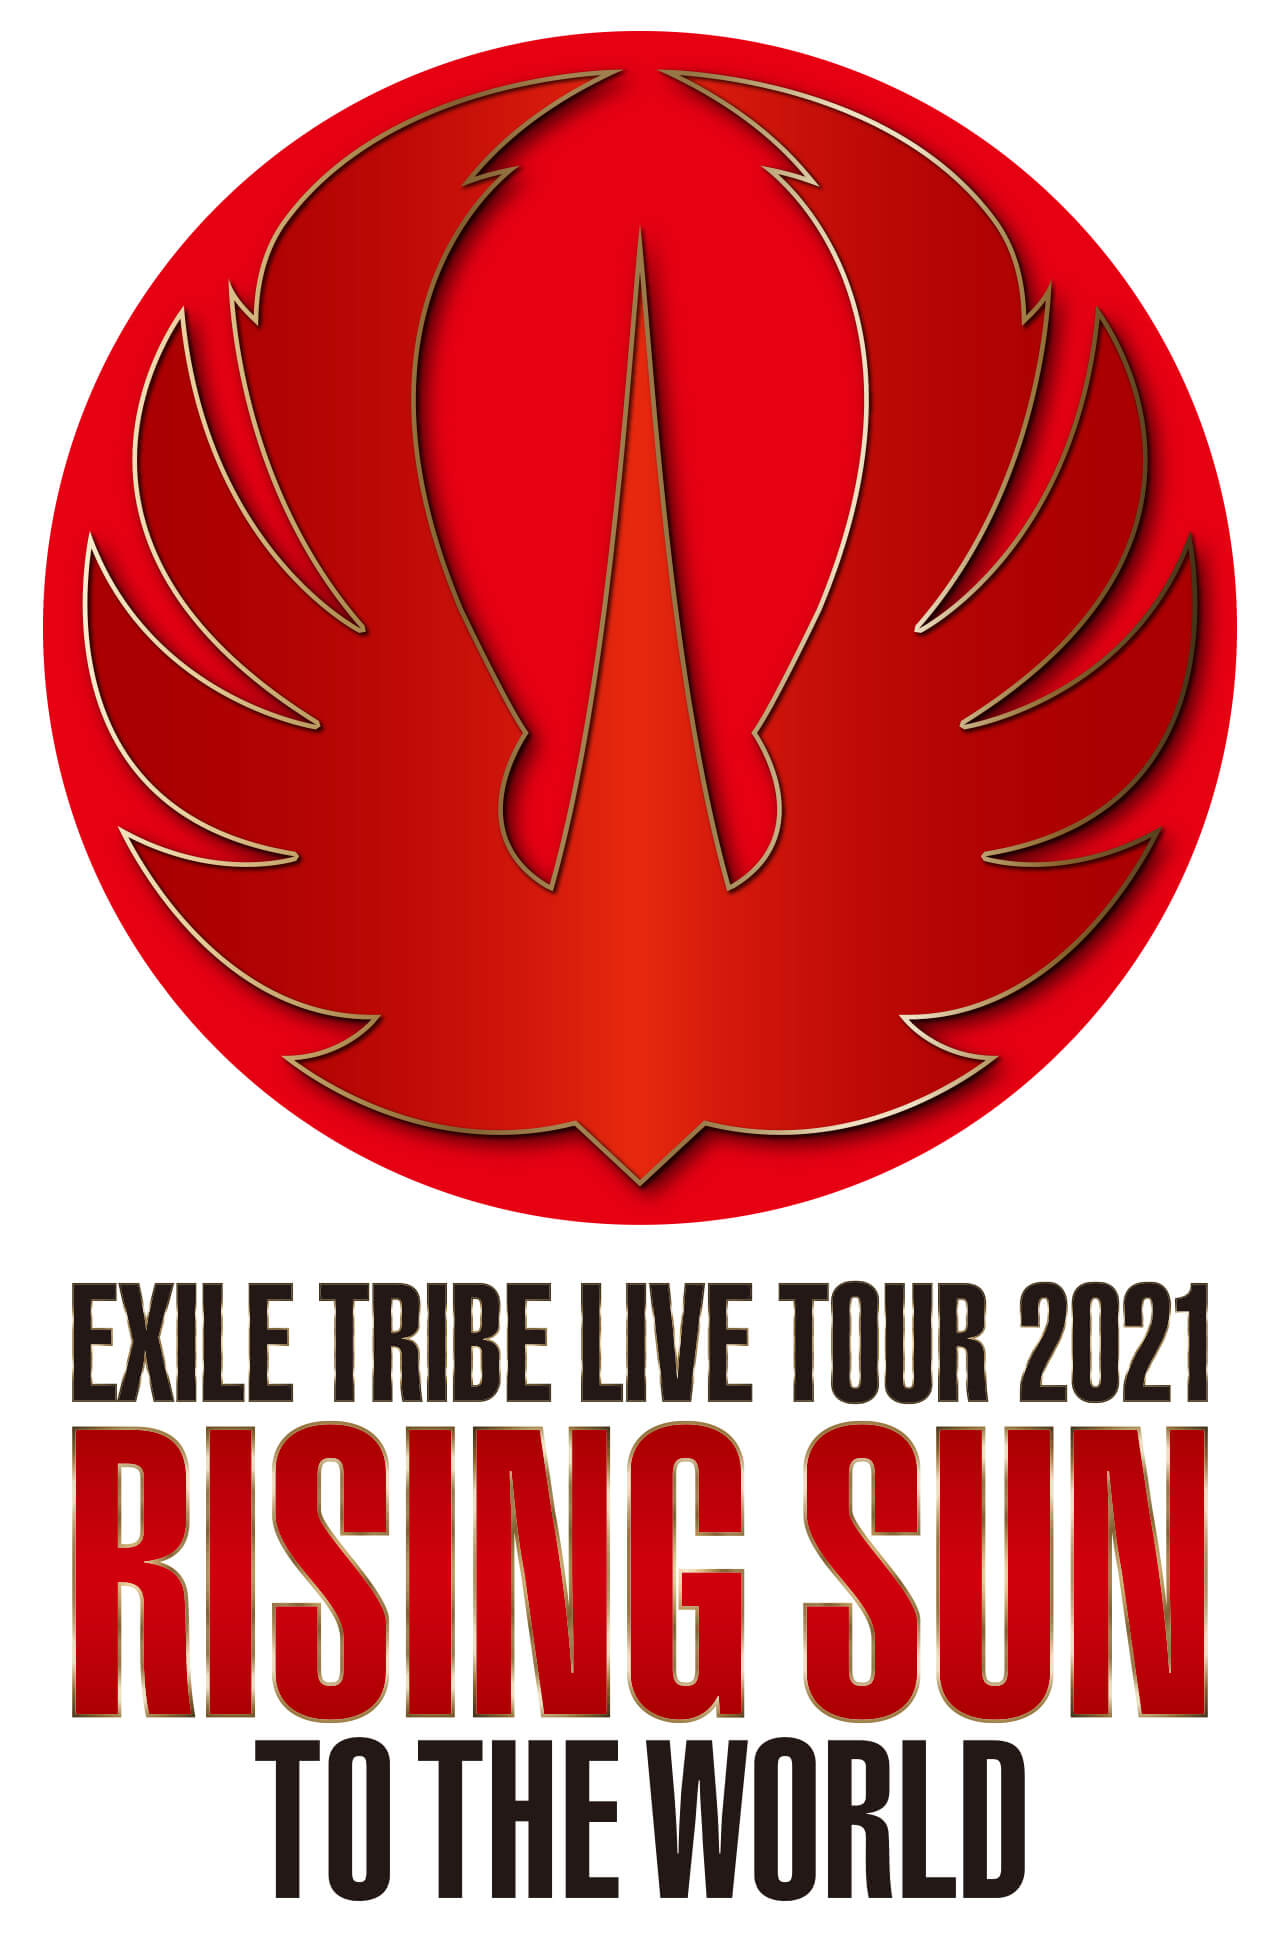 EXILE TRIBE LIVE TOUR 2021 RISING SUN TO THE WORLD